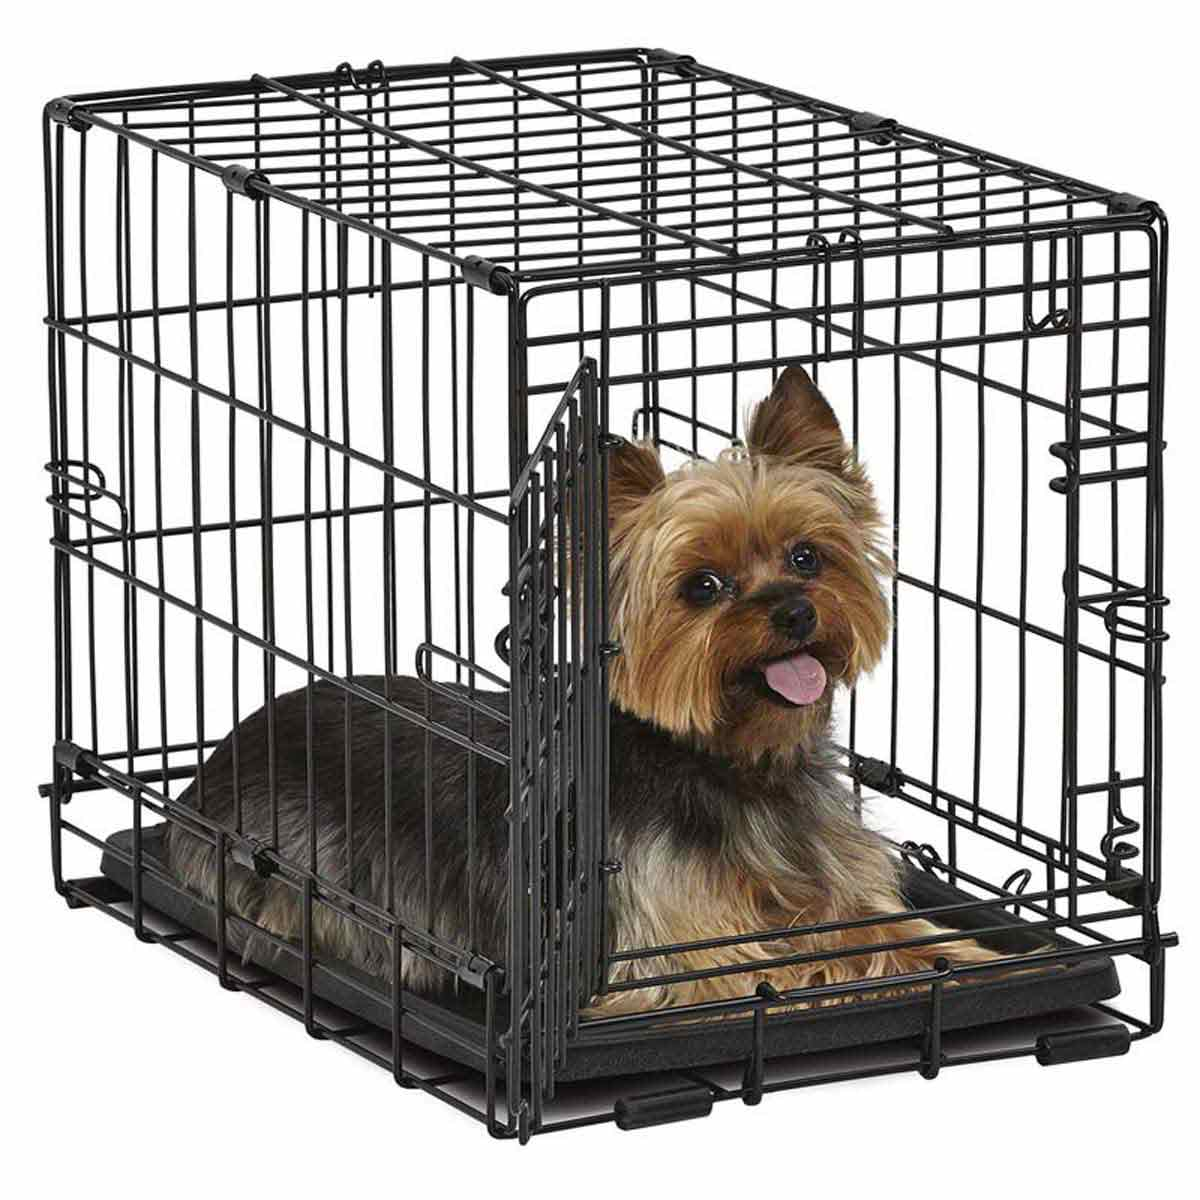 Midwest Contour Crate 18 inch Single Door Small Dog Kennel - 18.75 inches by 13 inches by 14.25 inches